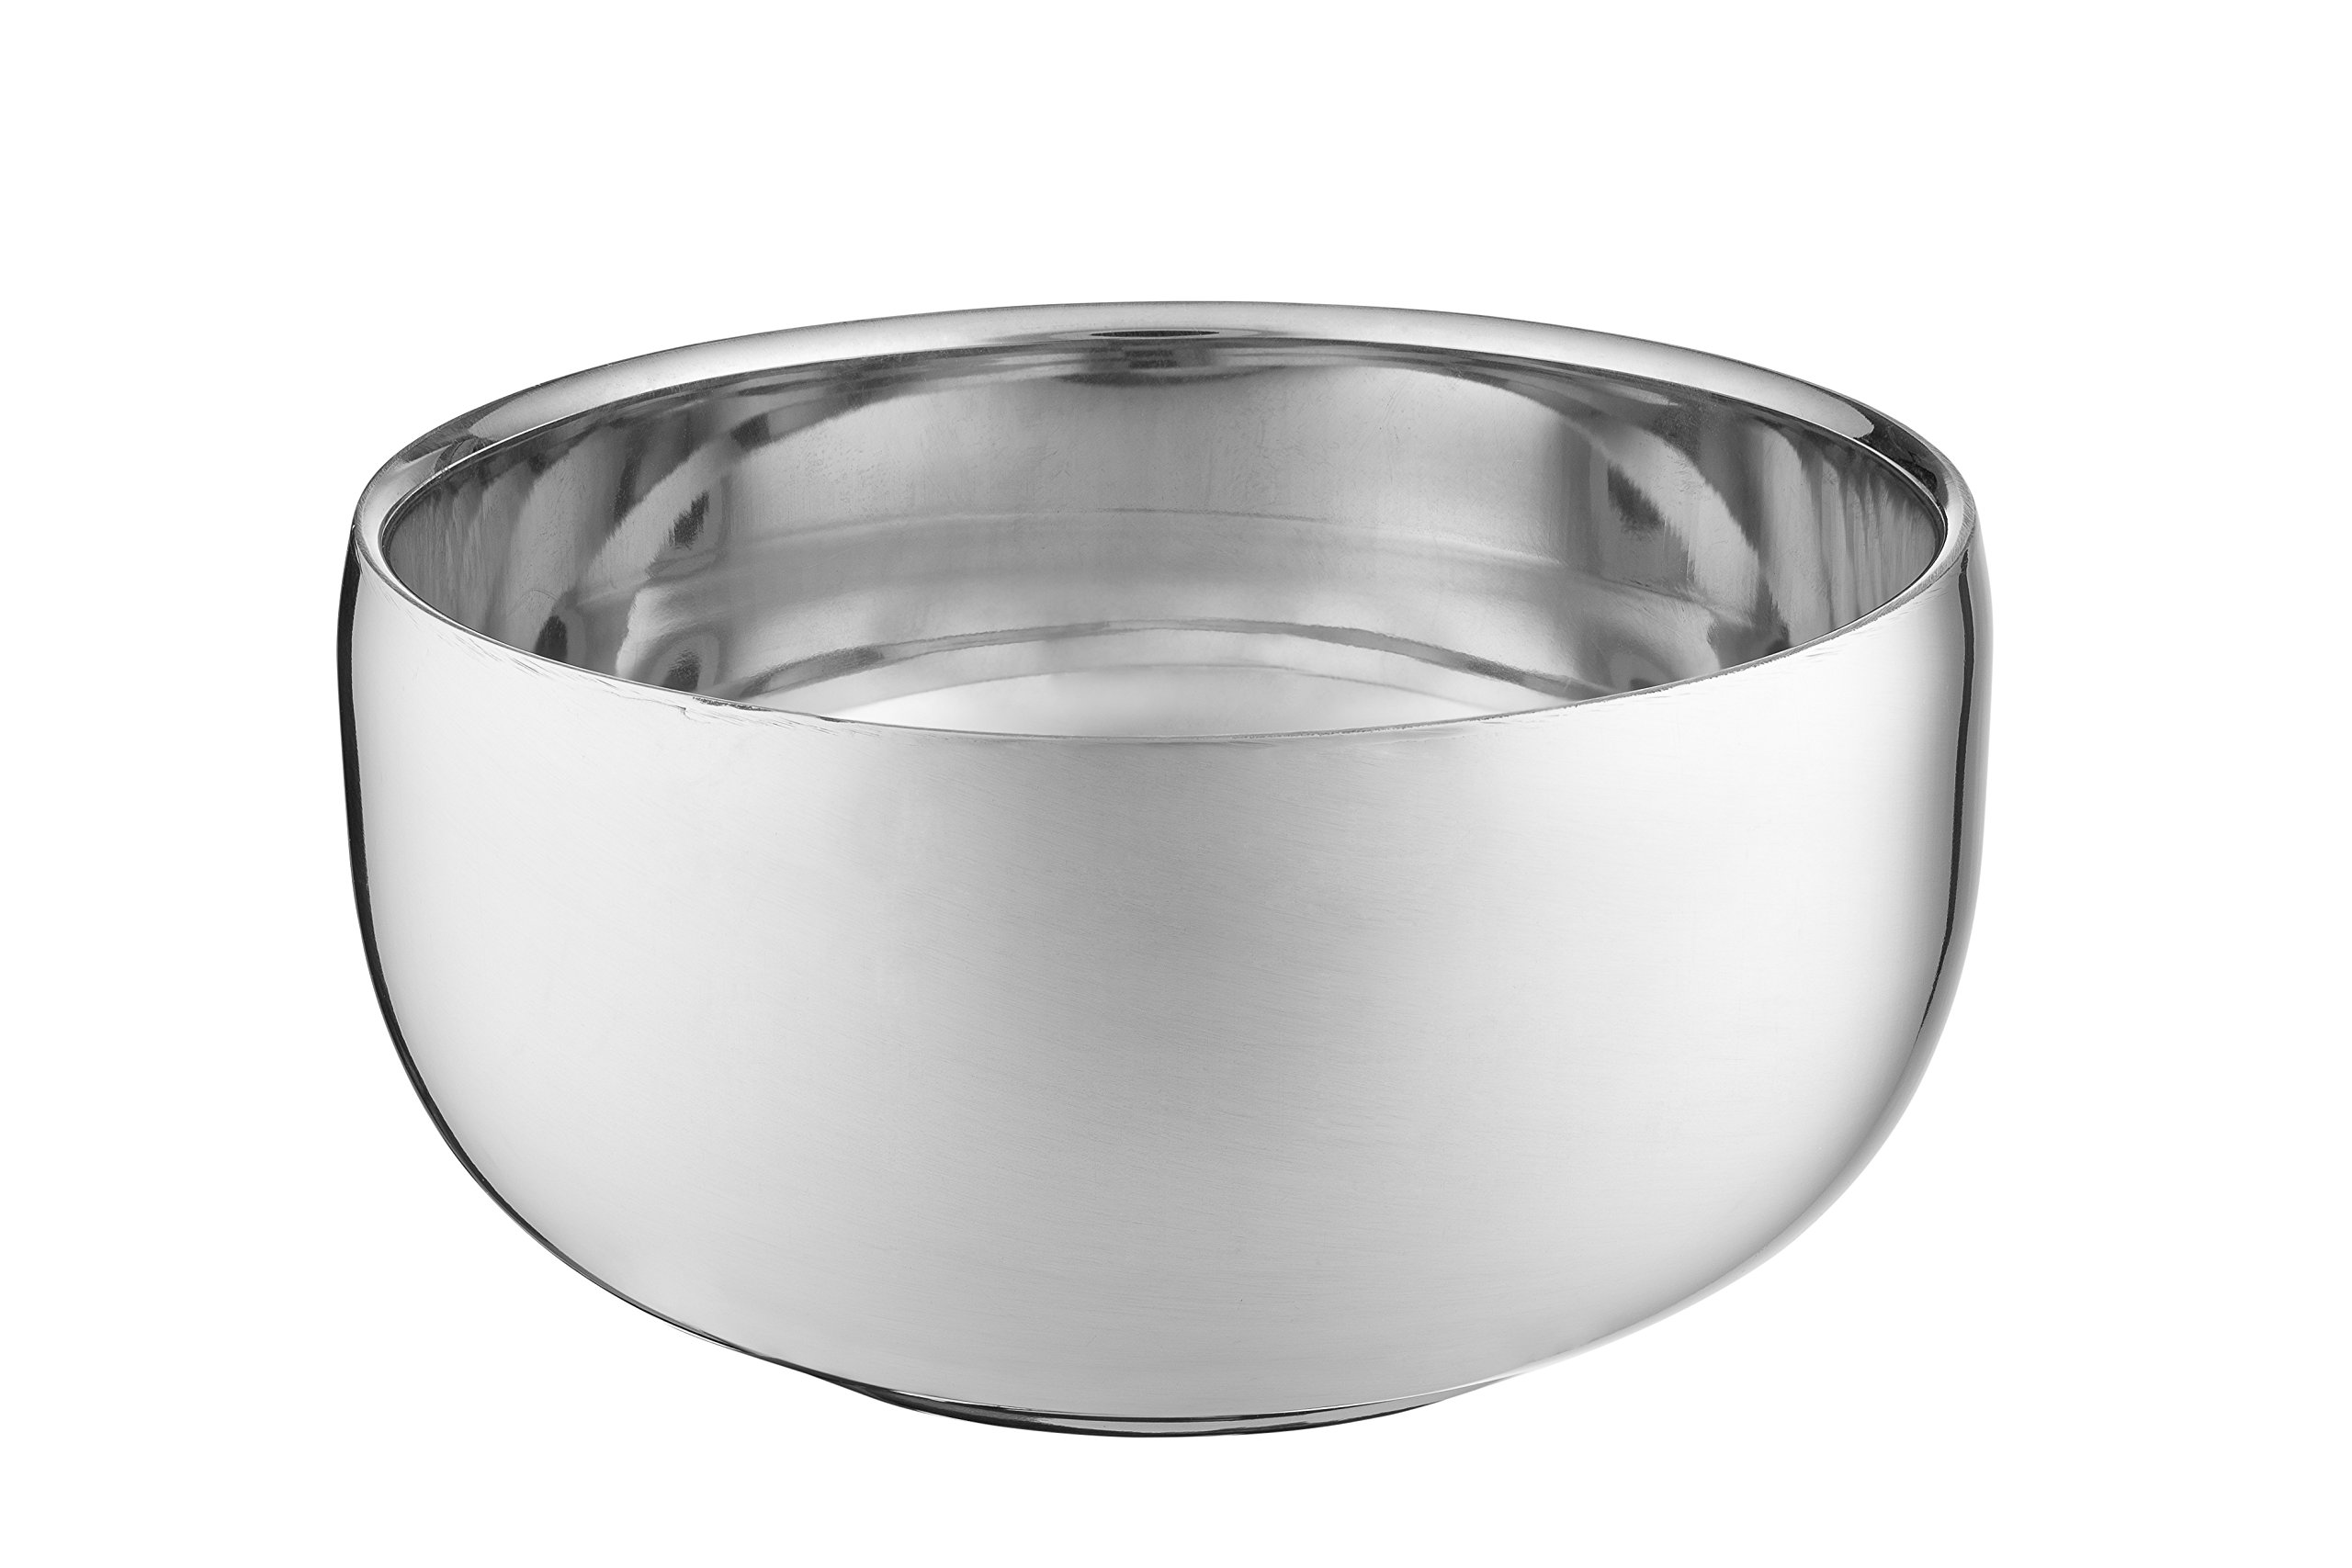 Perfecto Stainless Steel Shaving Bowl | Durable Metal Mug For Shaving Soap & Cream | Perfect Addition To Your Wet Shaving Kit | Double Layer Smooth Shave Unbreakable Mug With Heat Insulation